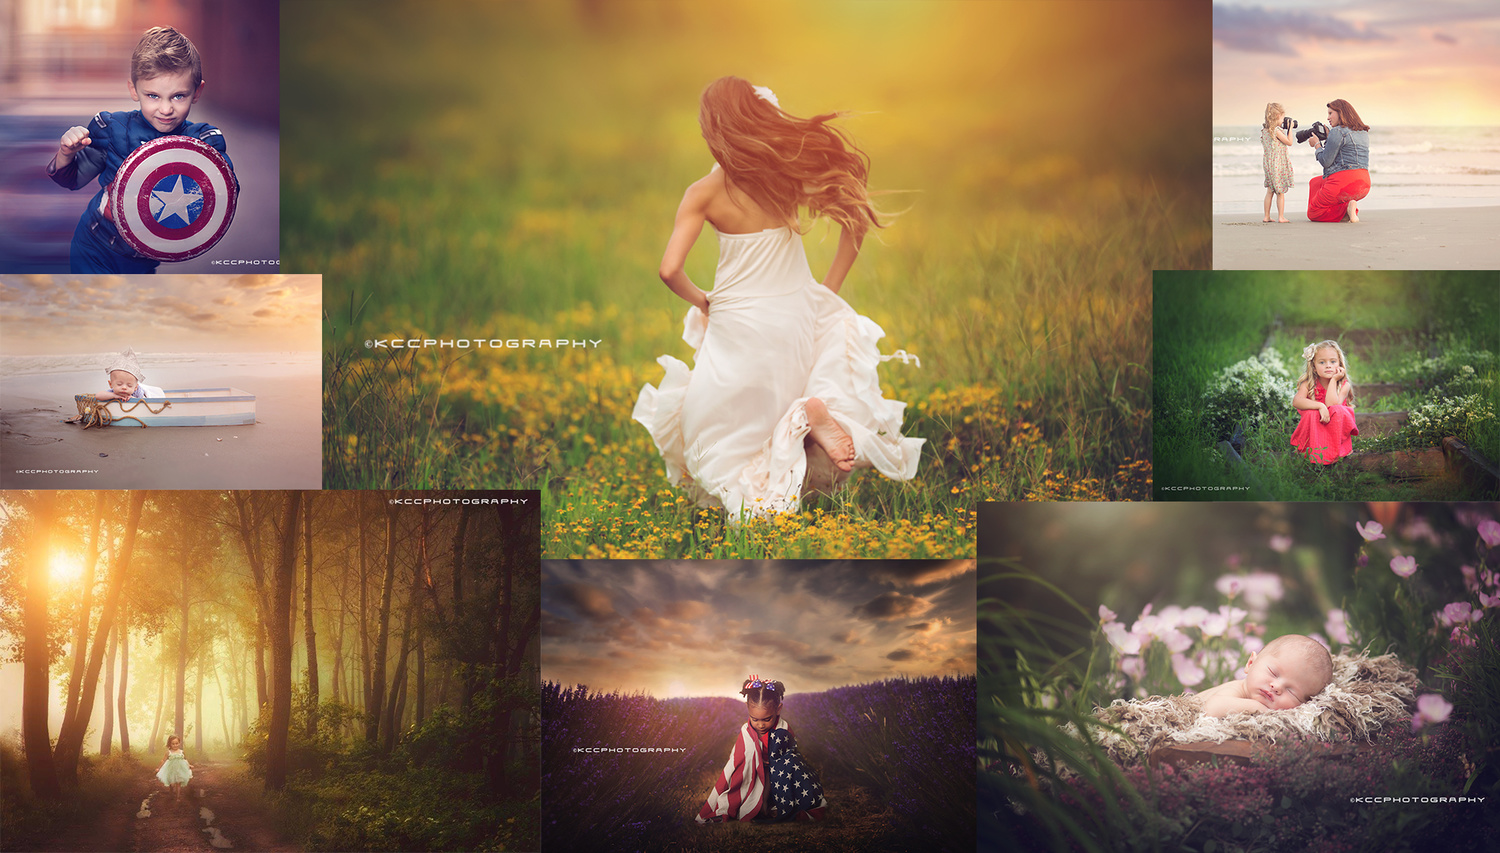 child-photography-studios-photo-editing-sample